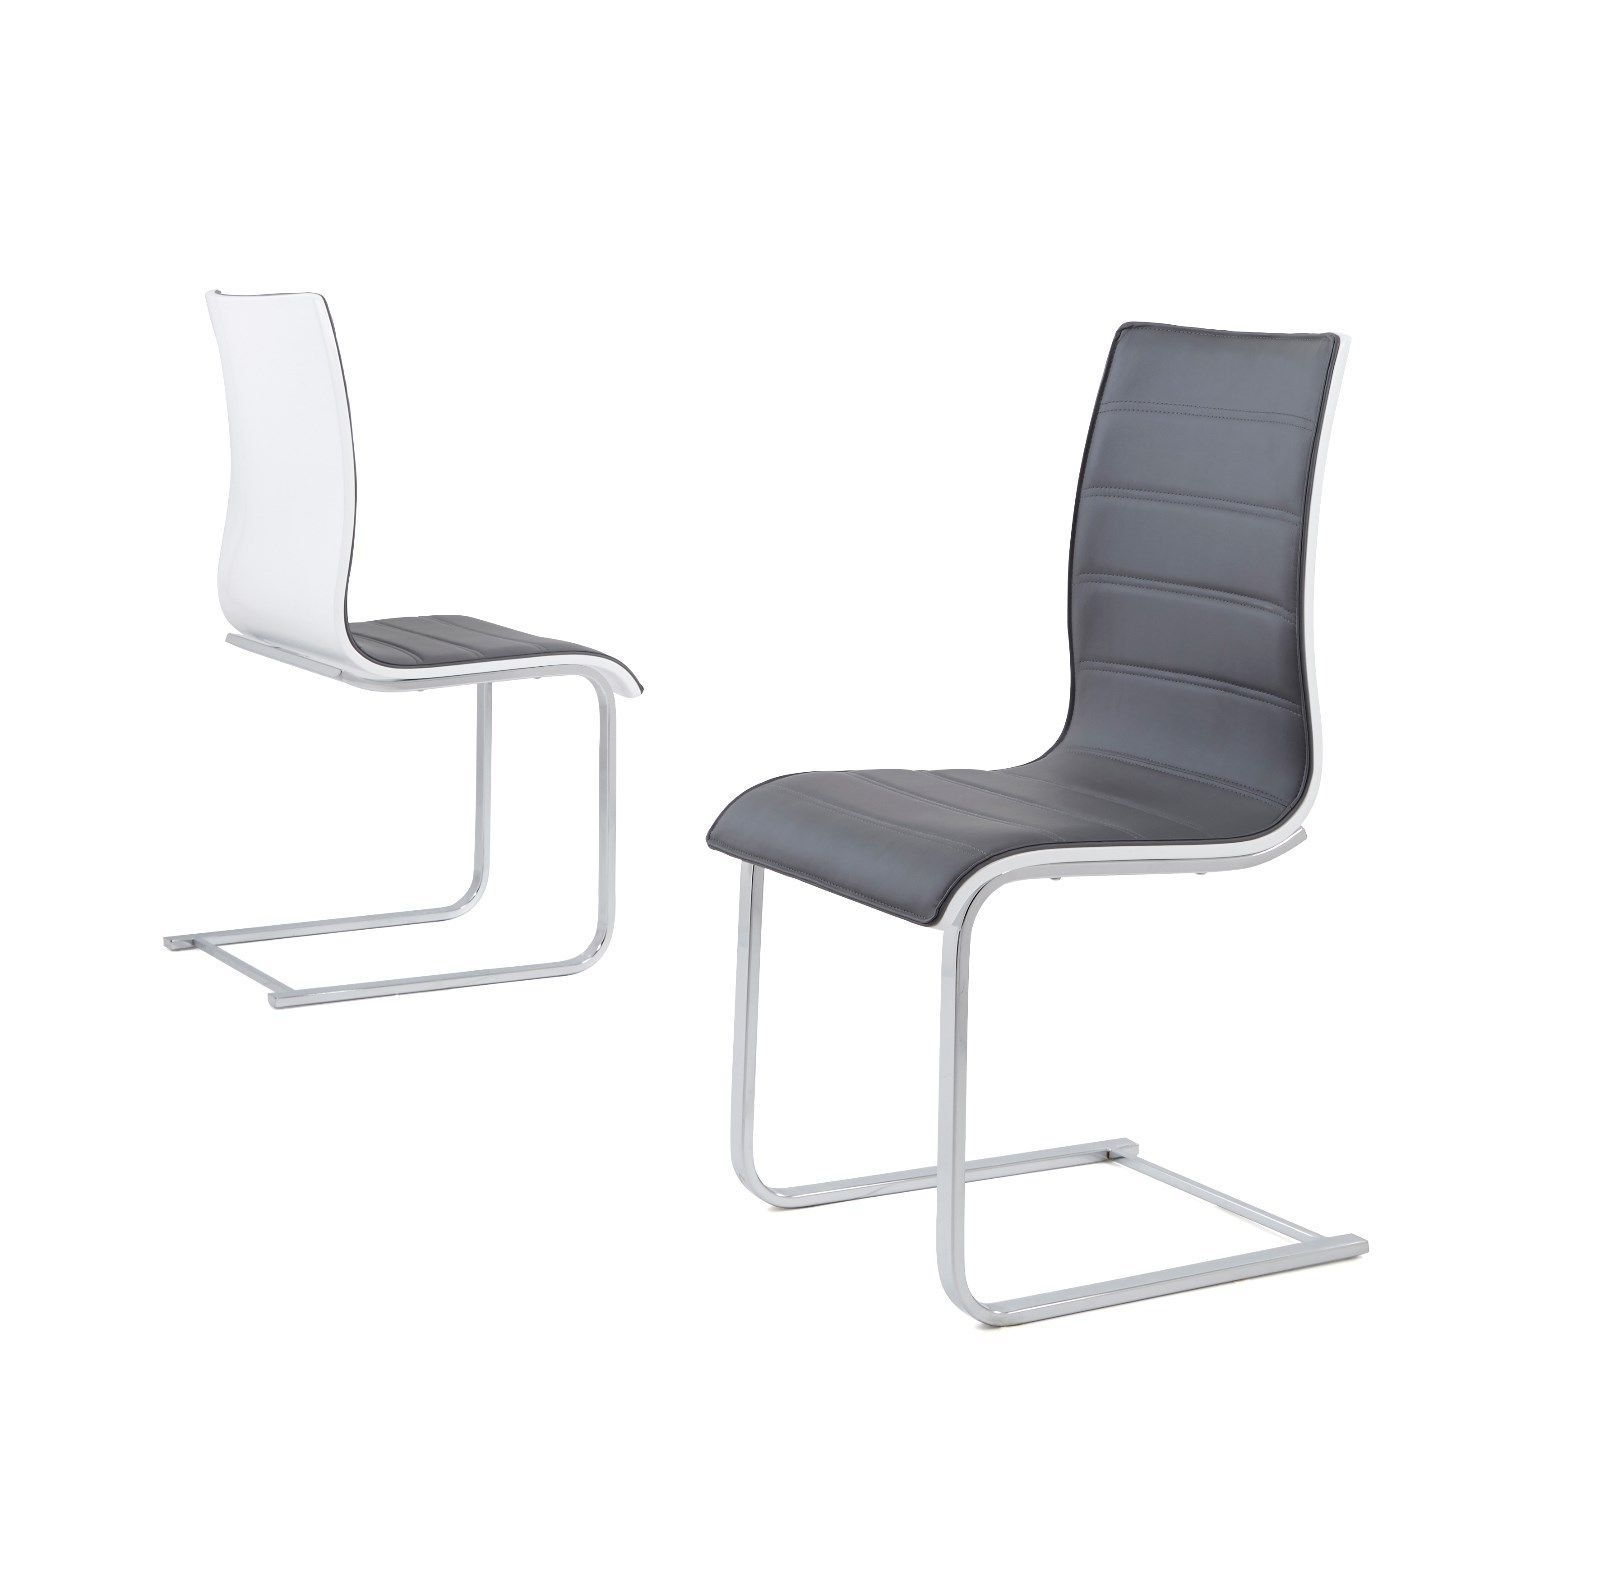 Wynn High Gloss Back Dining Chairs Only – Grey & White Throughout Favorite Grey Dining Chairs (View 11 of 25)